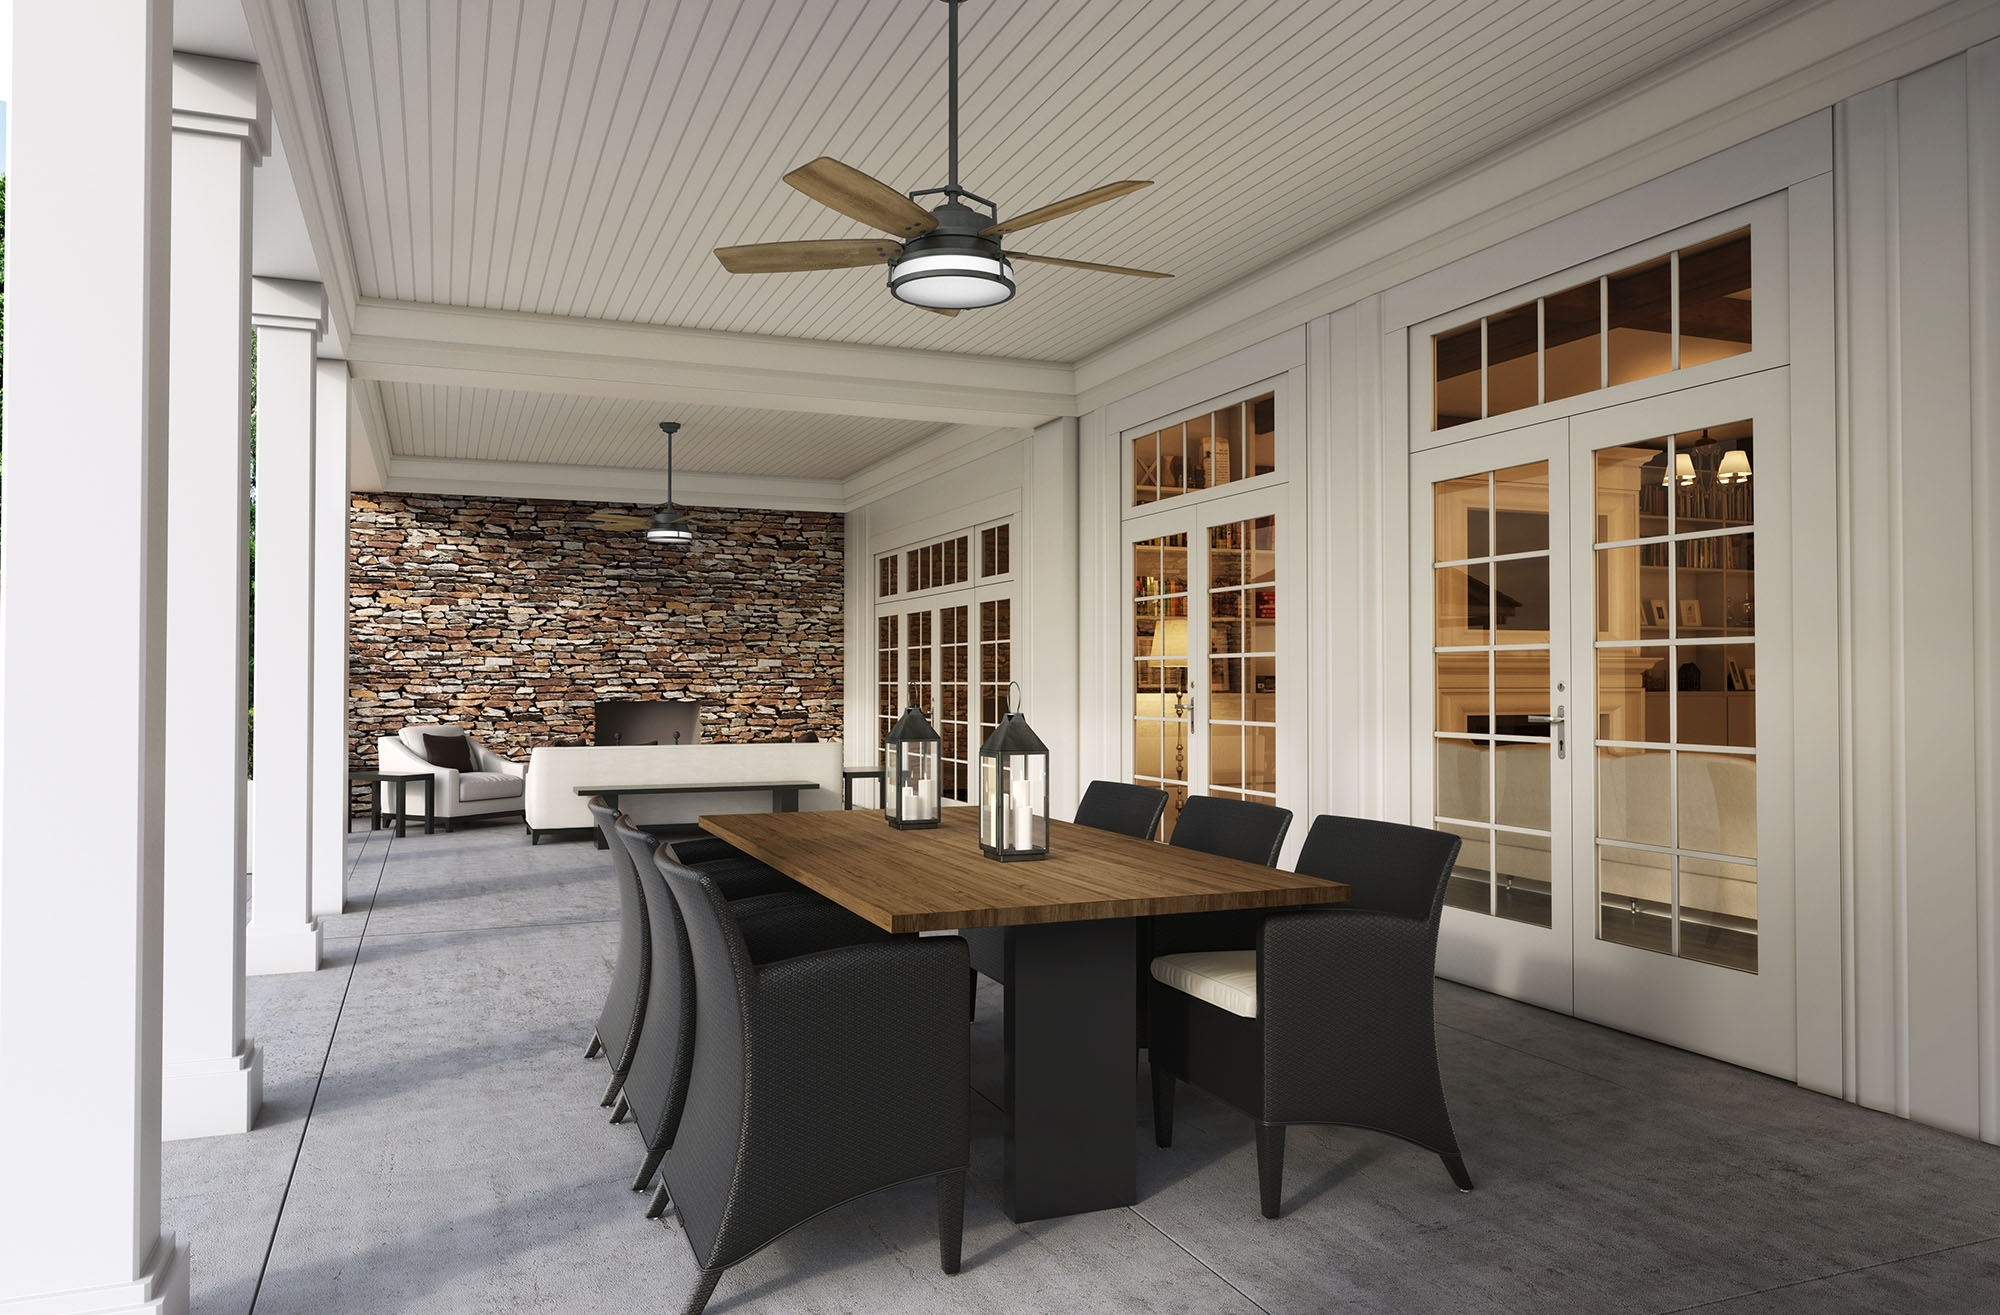 Joanna Gaines Outdoor Ceiling Fans Pertaining To Popular Caneel Bay Featured In Hgtv's Fixer Upper – Casablanca Fan Company Blog (Gallery 4 of 20)